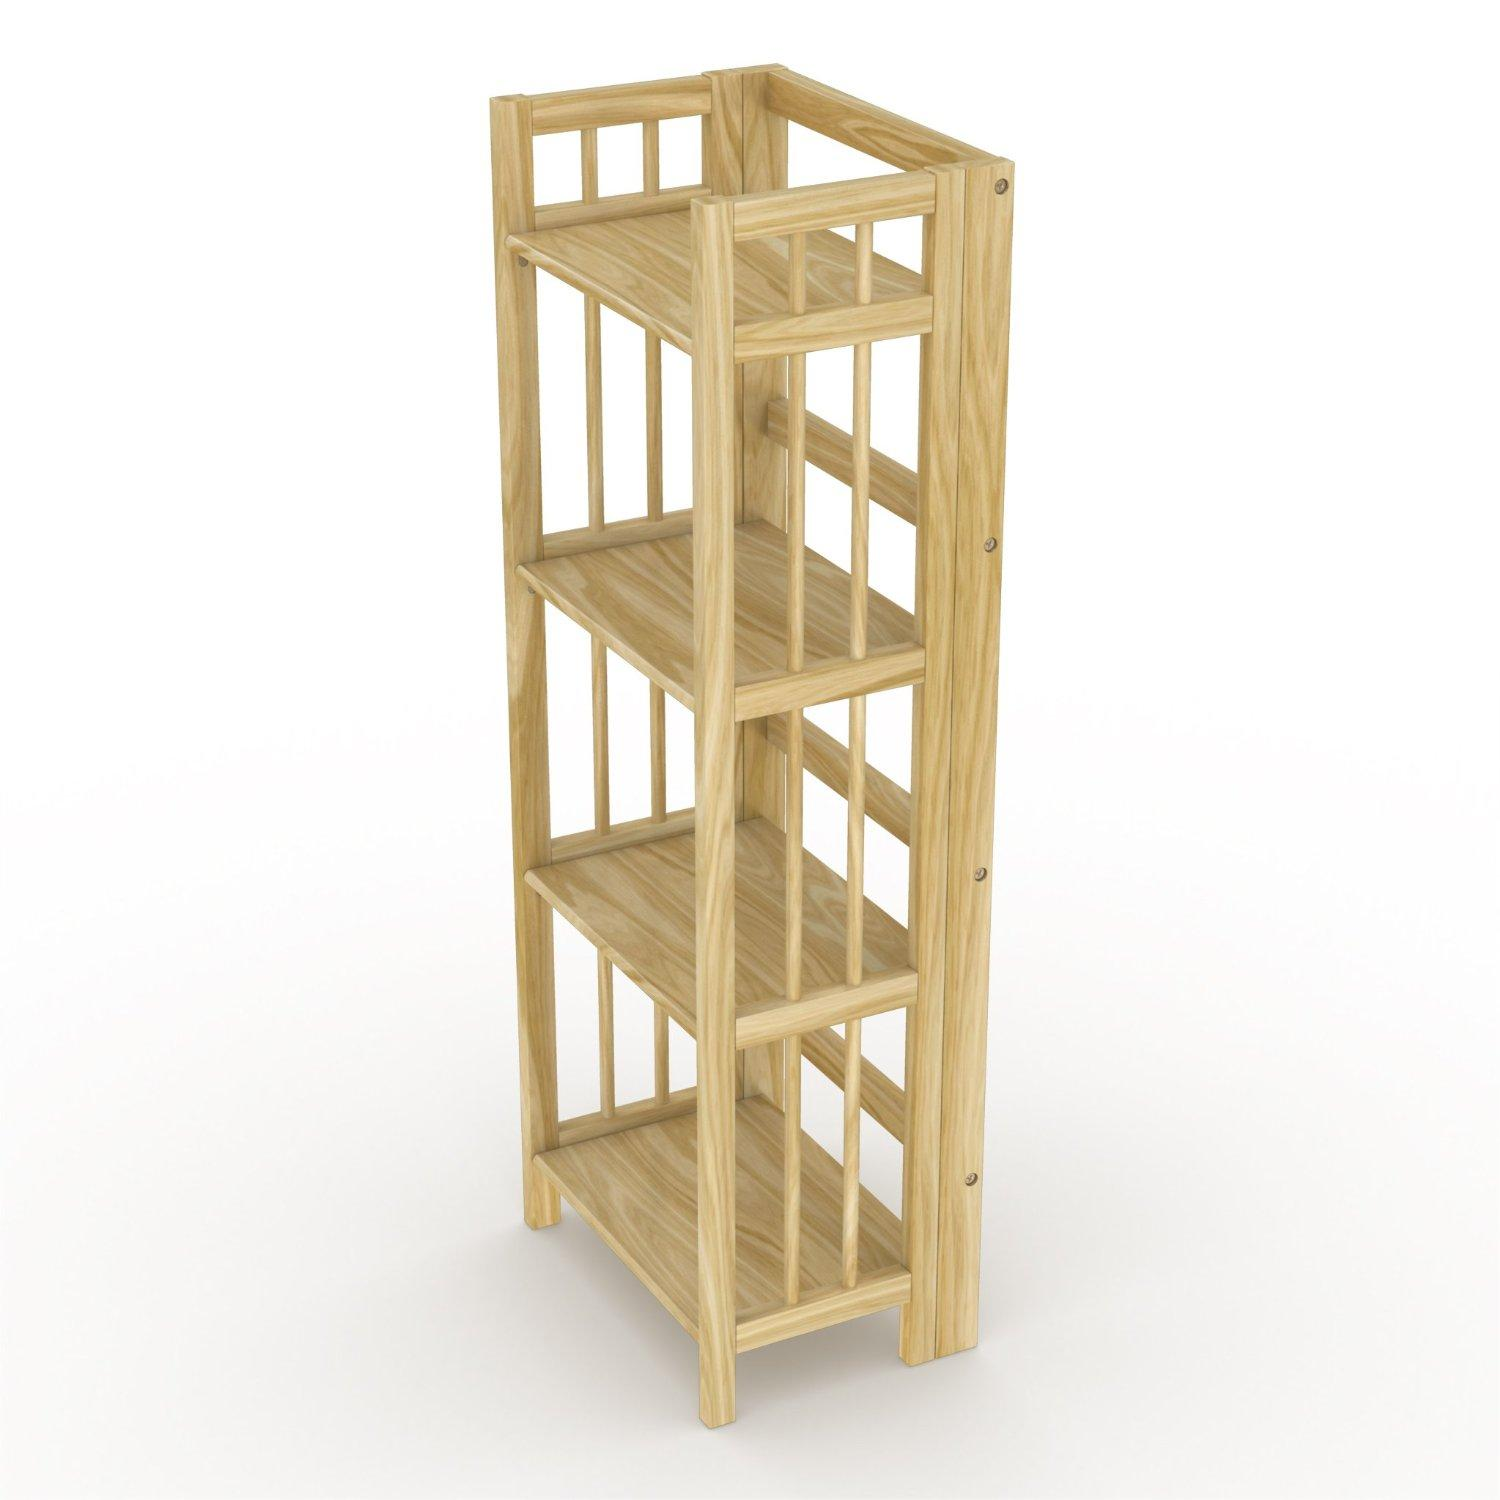 Stony edge fbc 16 na no assembly folding Folding bookshelf